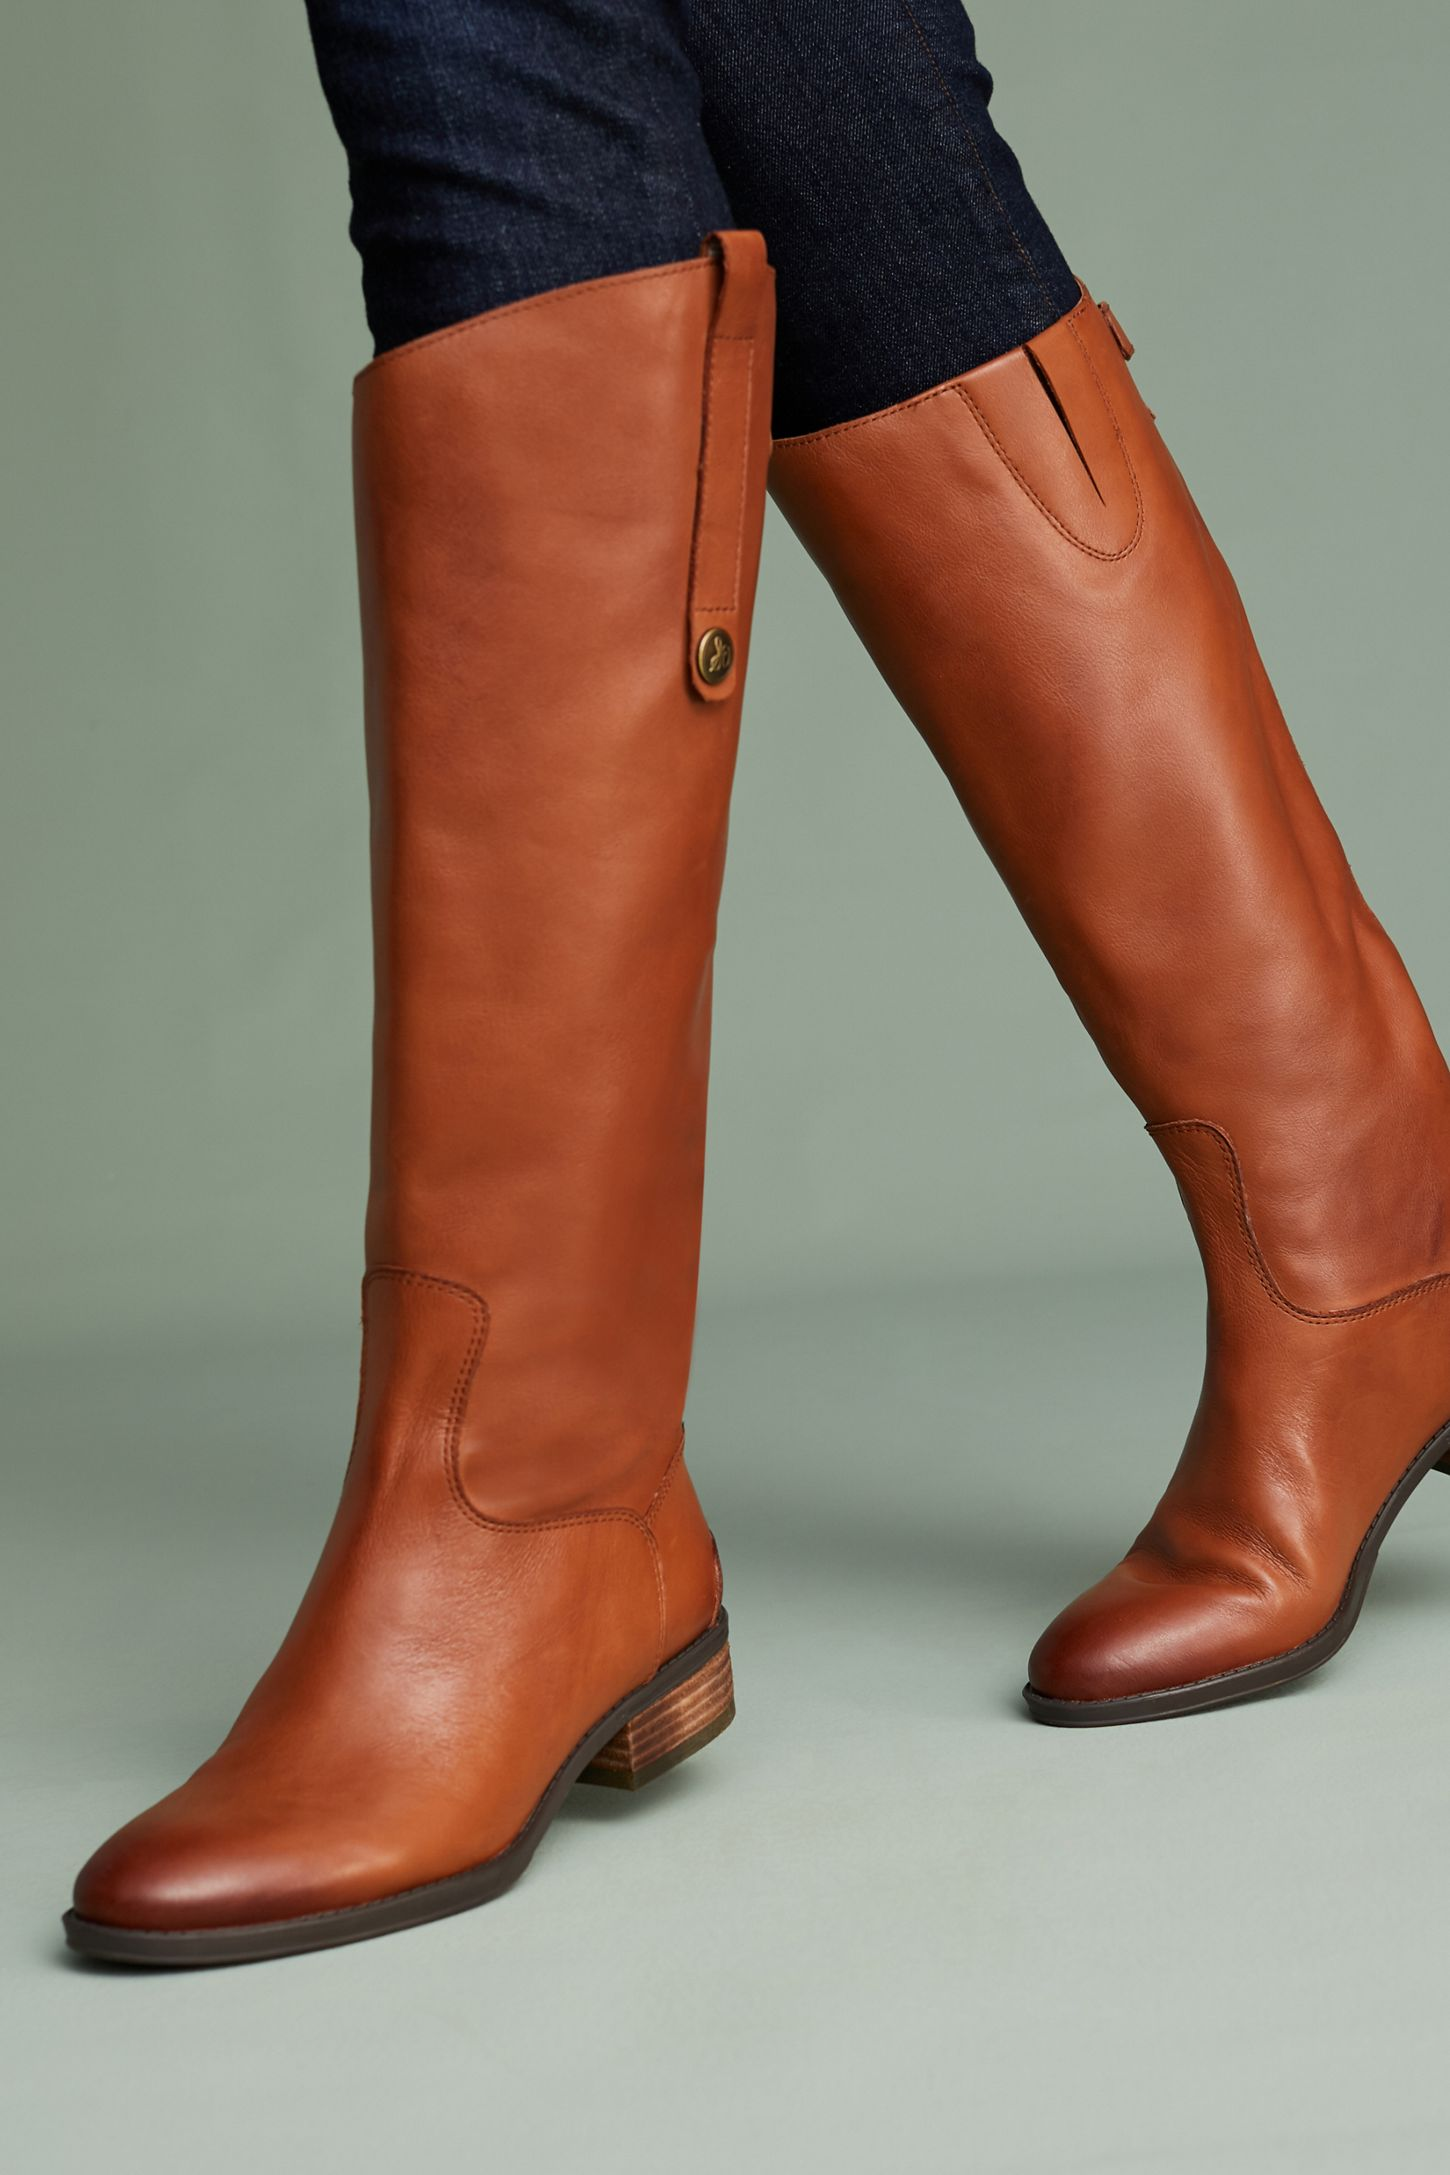 c74456dcb Sam Edelman Penny Riding Boots | Anthropologie